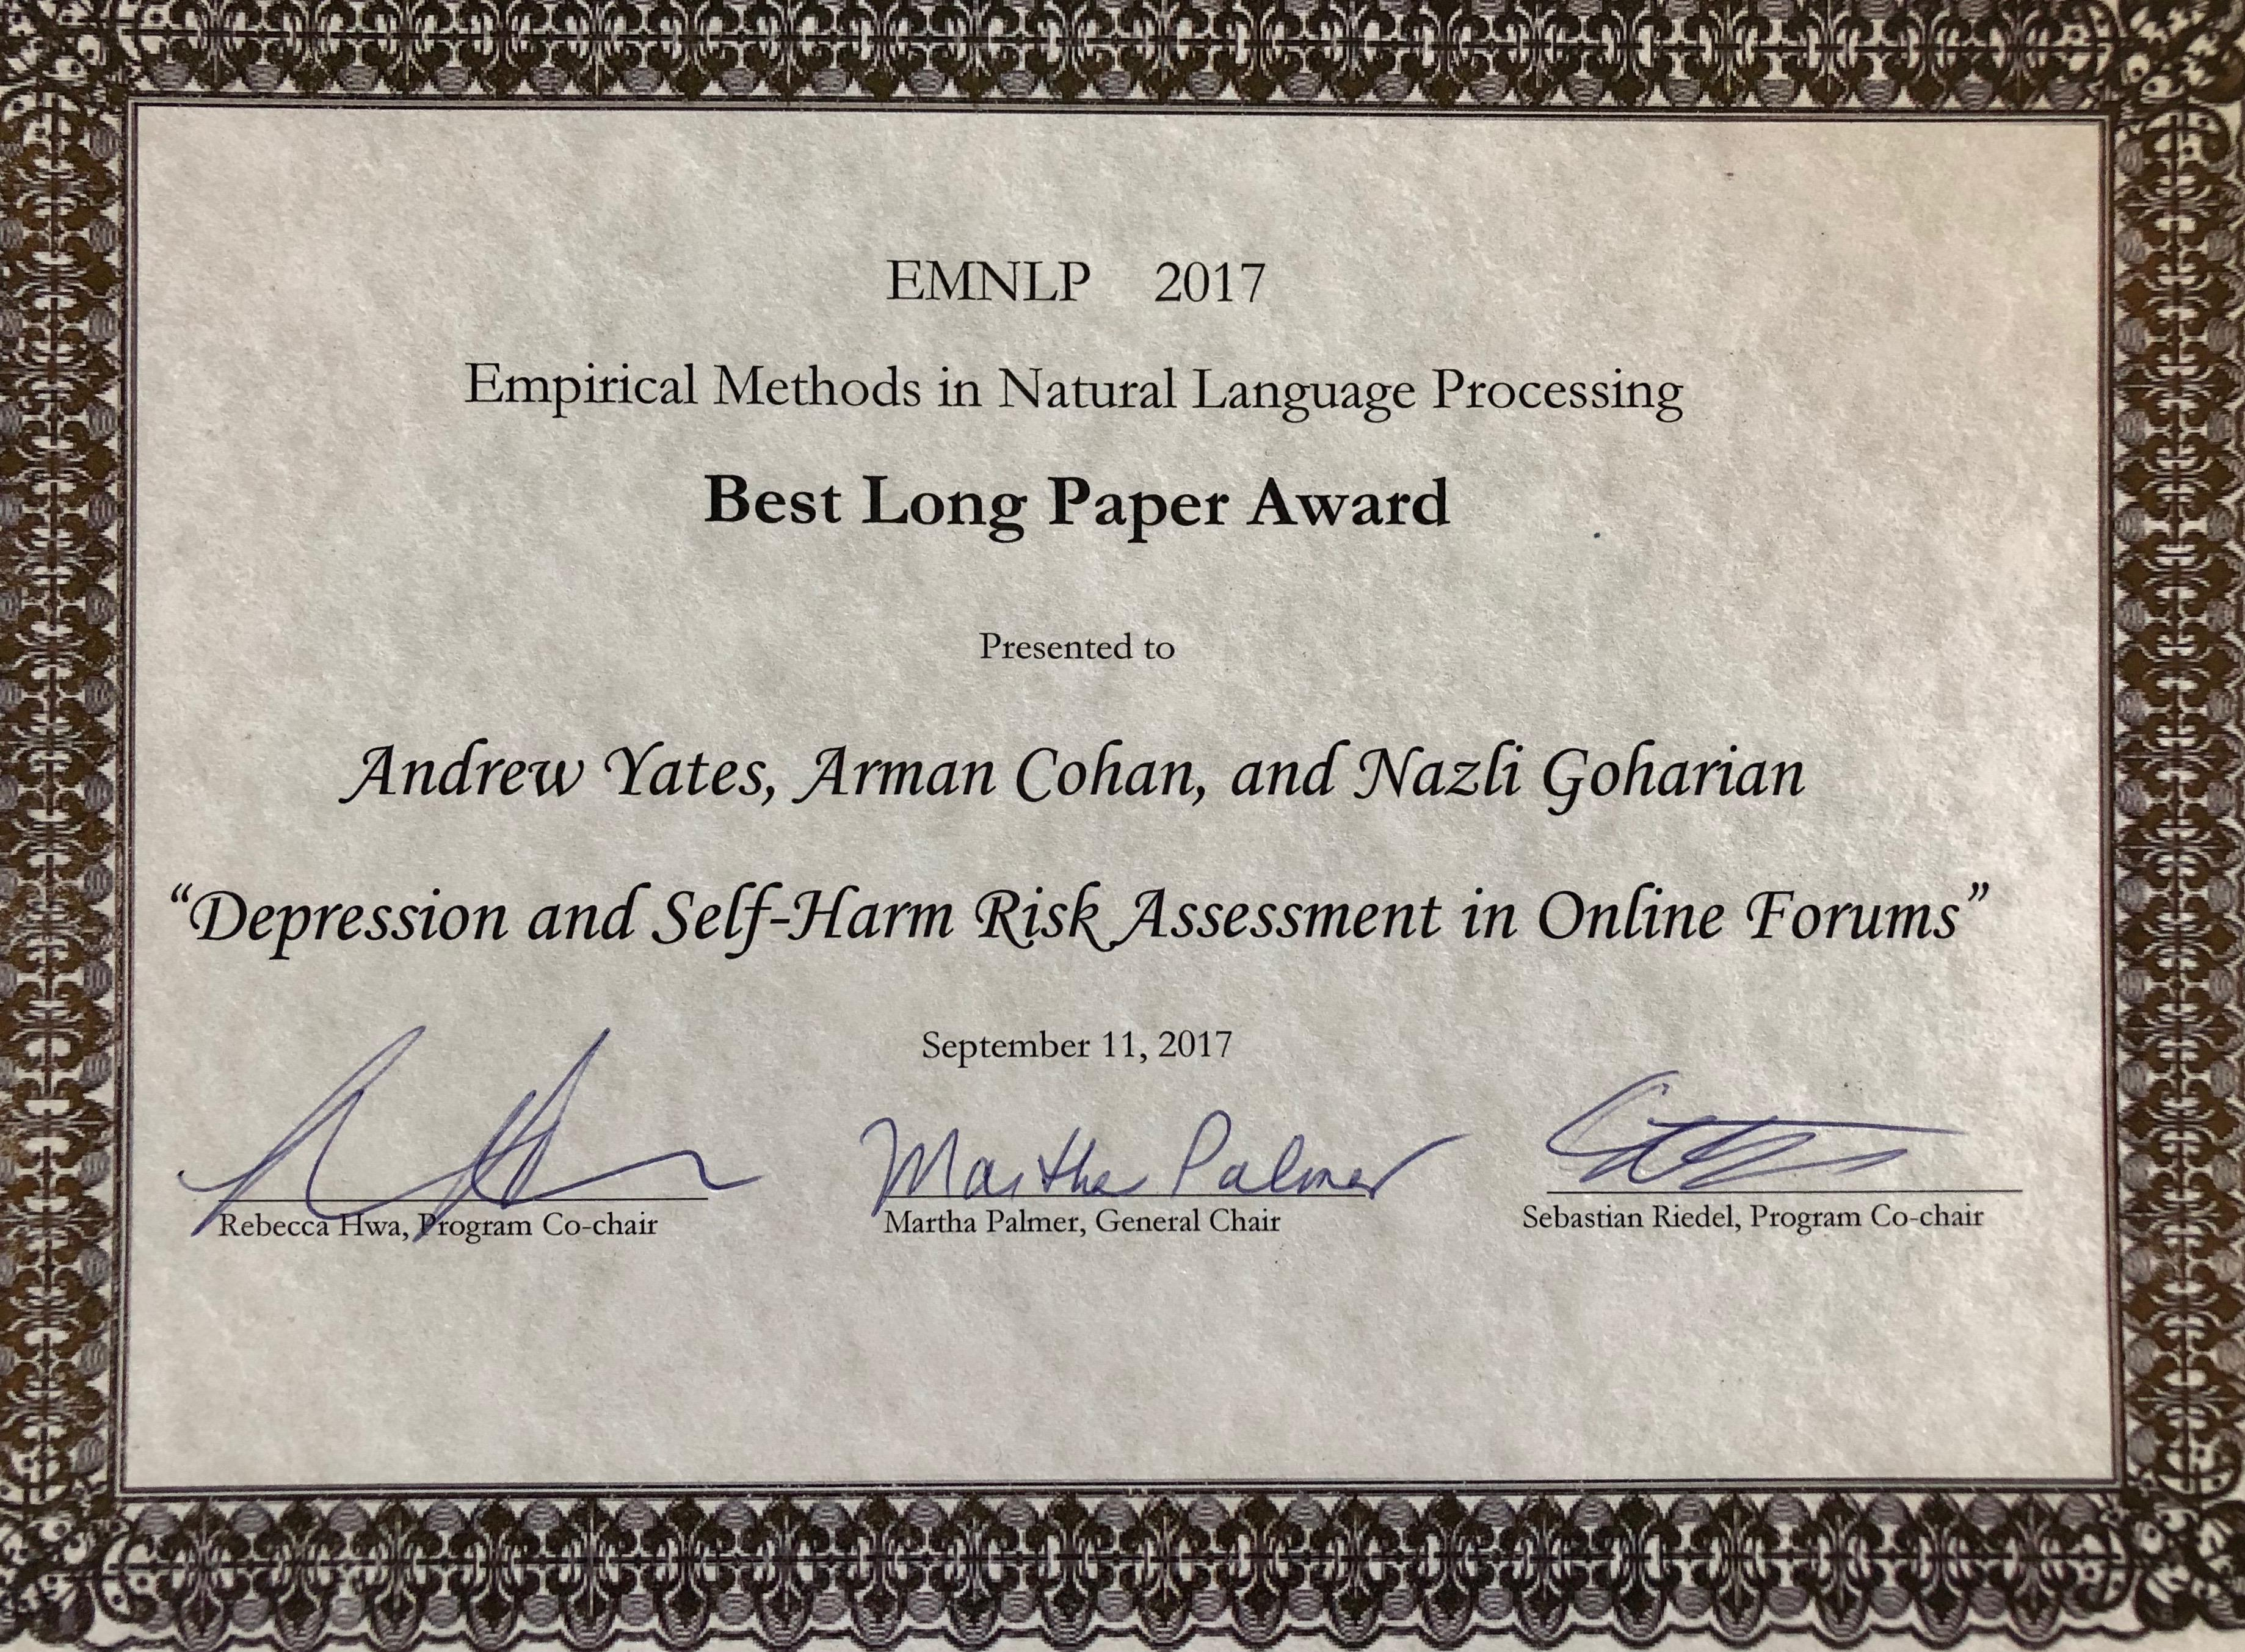 Best Long Paper Award